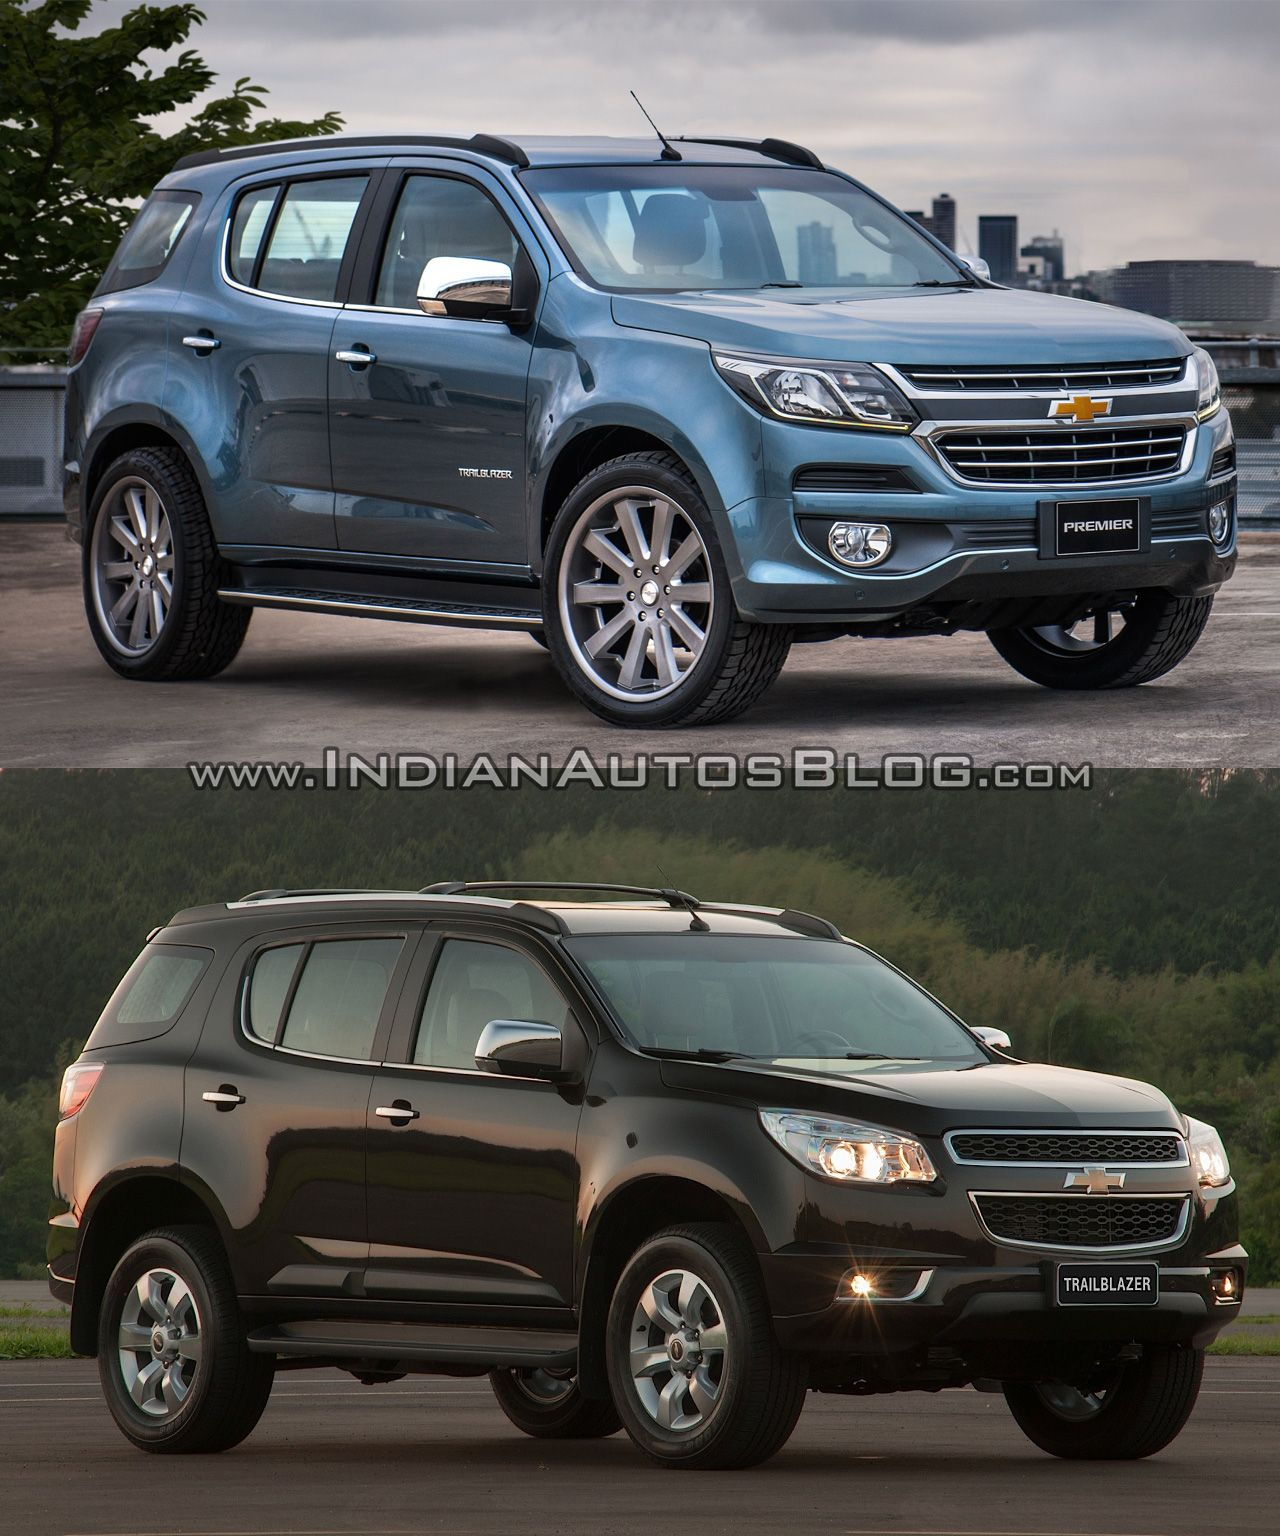 Chevrolet Trailblazer Premier Facelift Vs Older Model Carros Auto